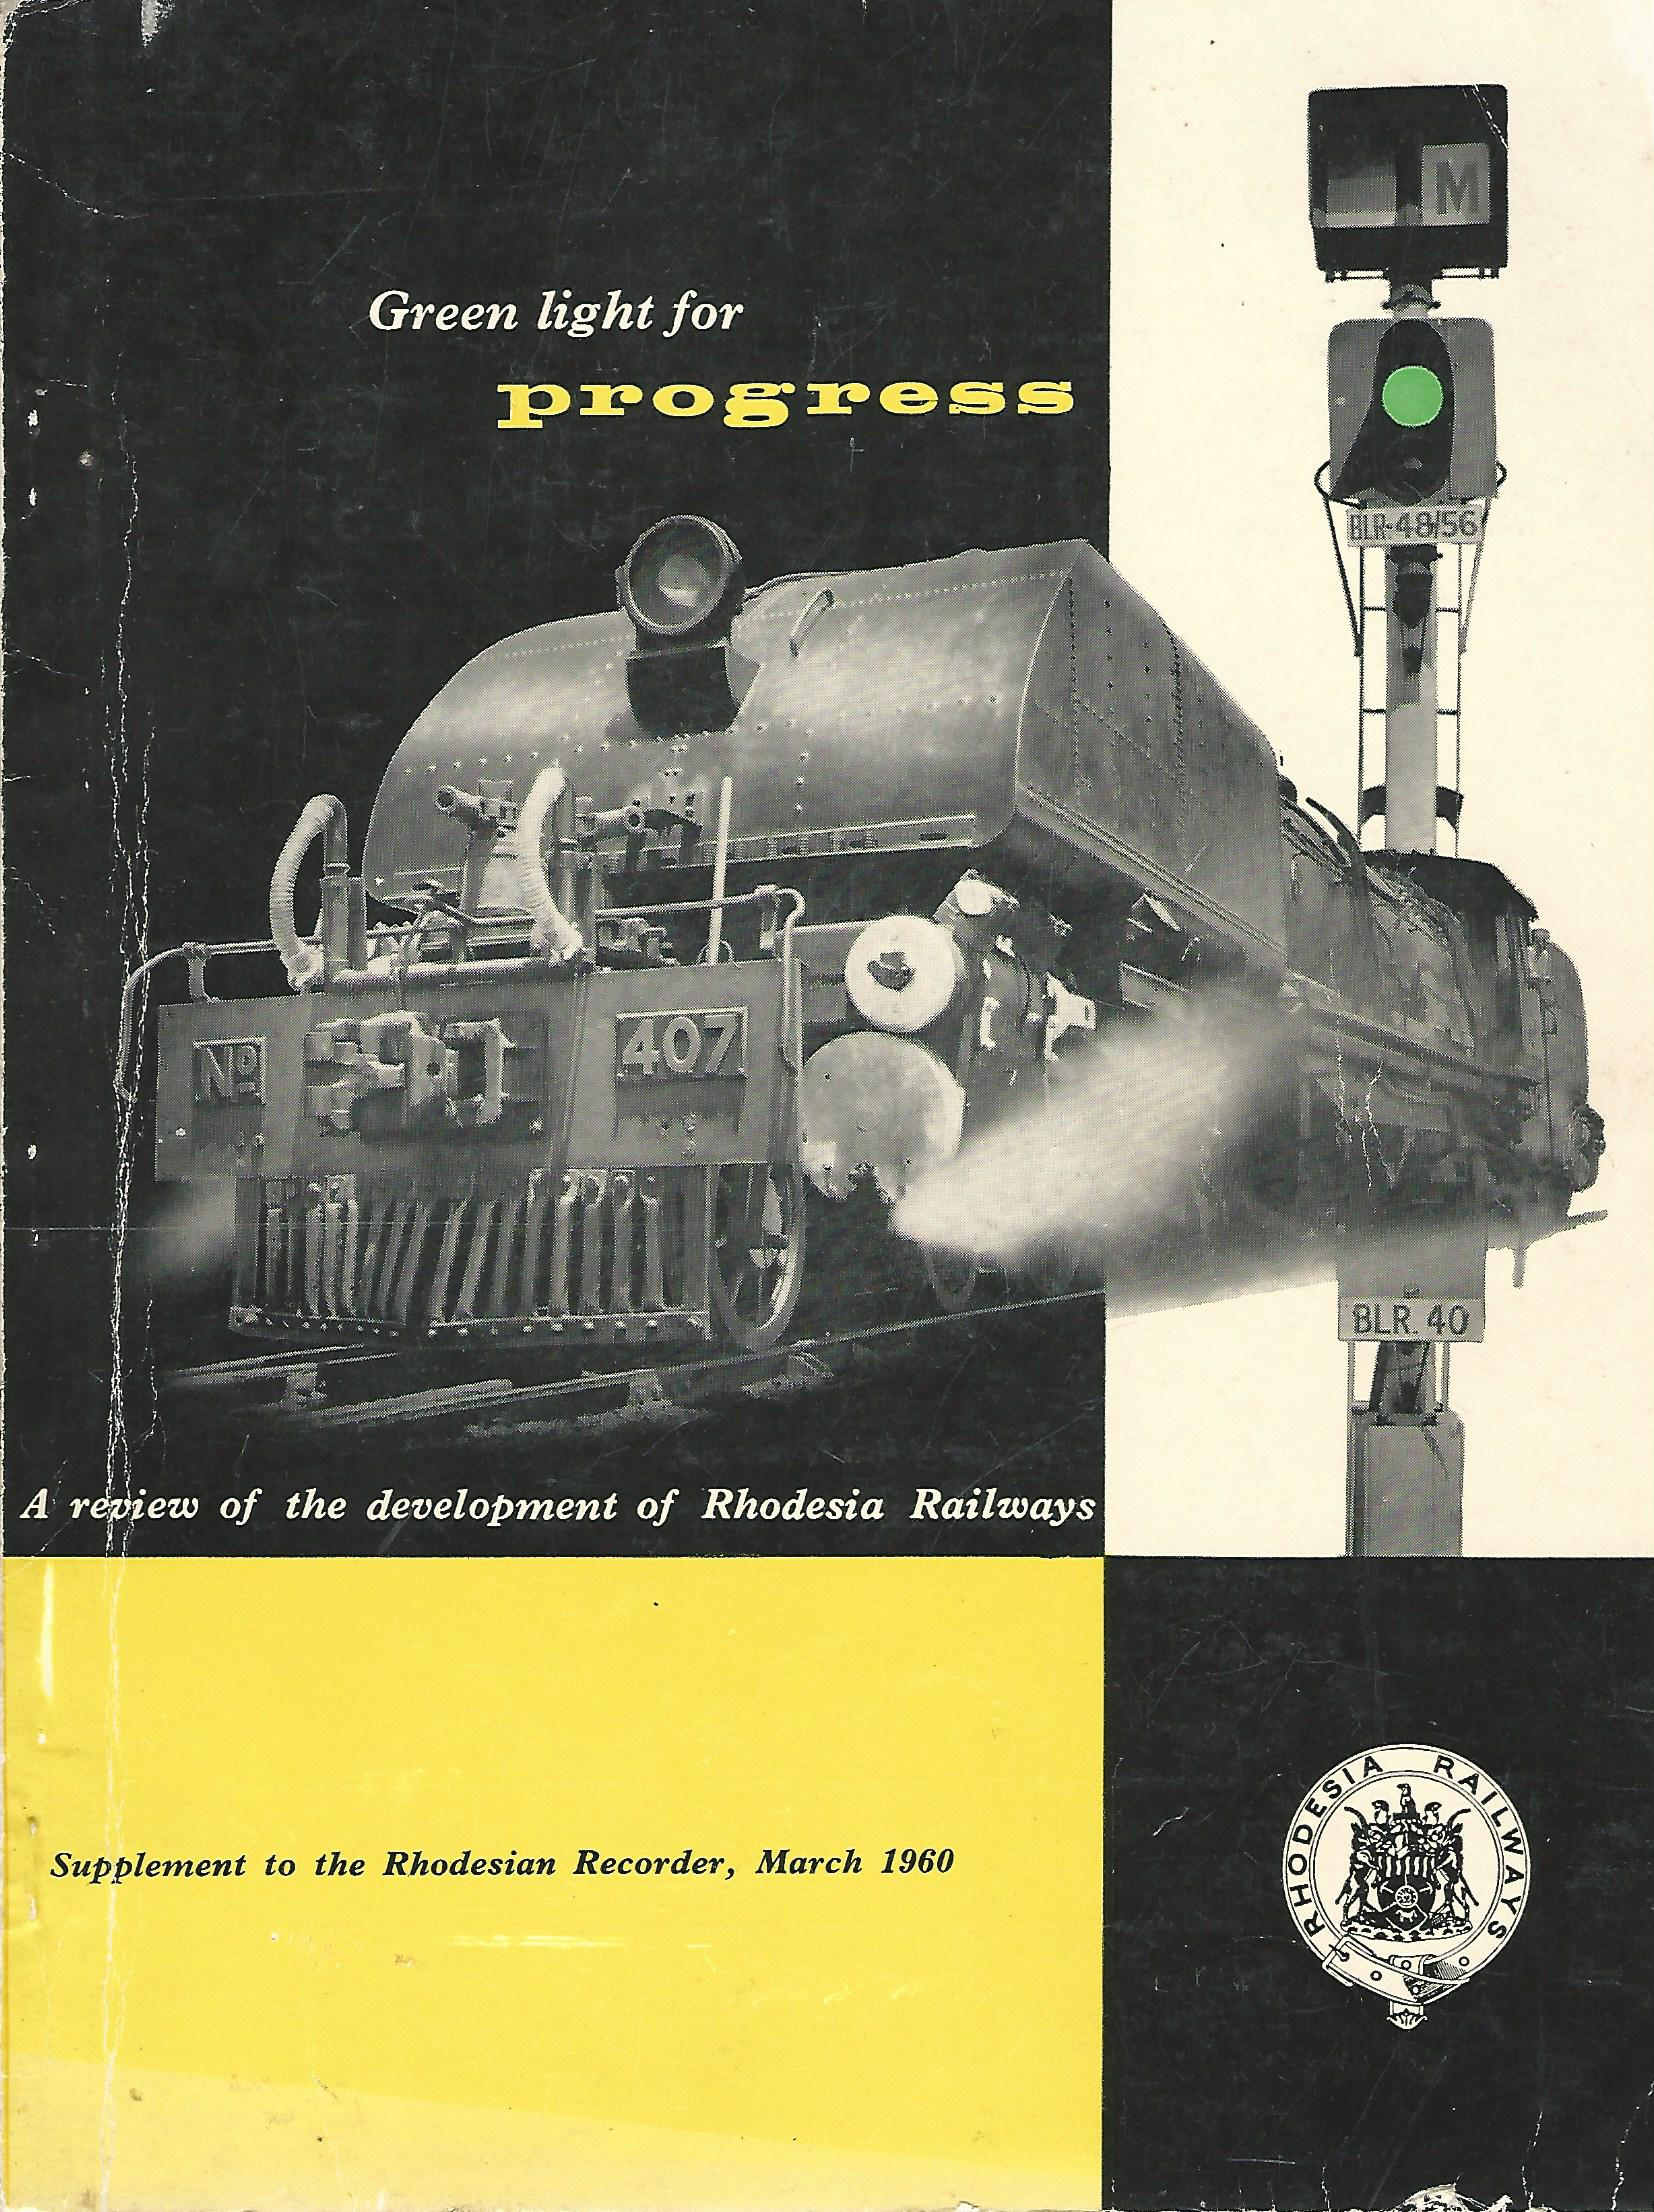 Image for Green Light for Progress: A Review of the Development of Rhodesia Railways, Supplement to the Rhodesian Recorder, March 1960.